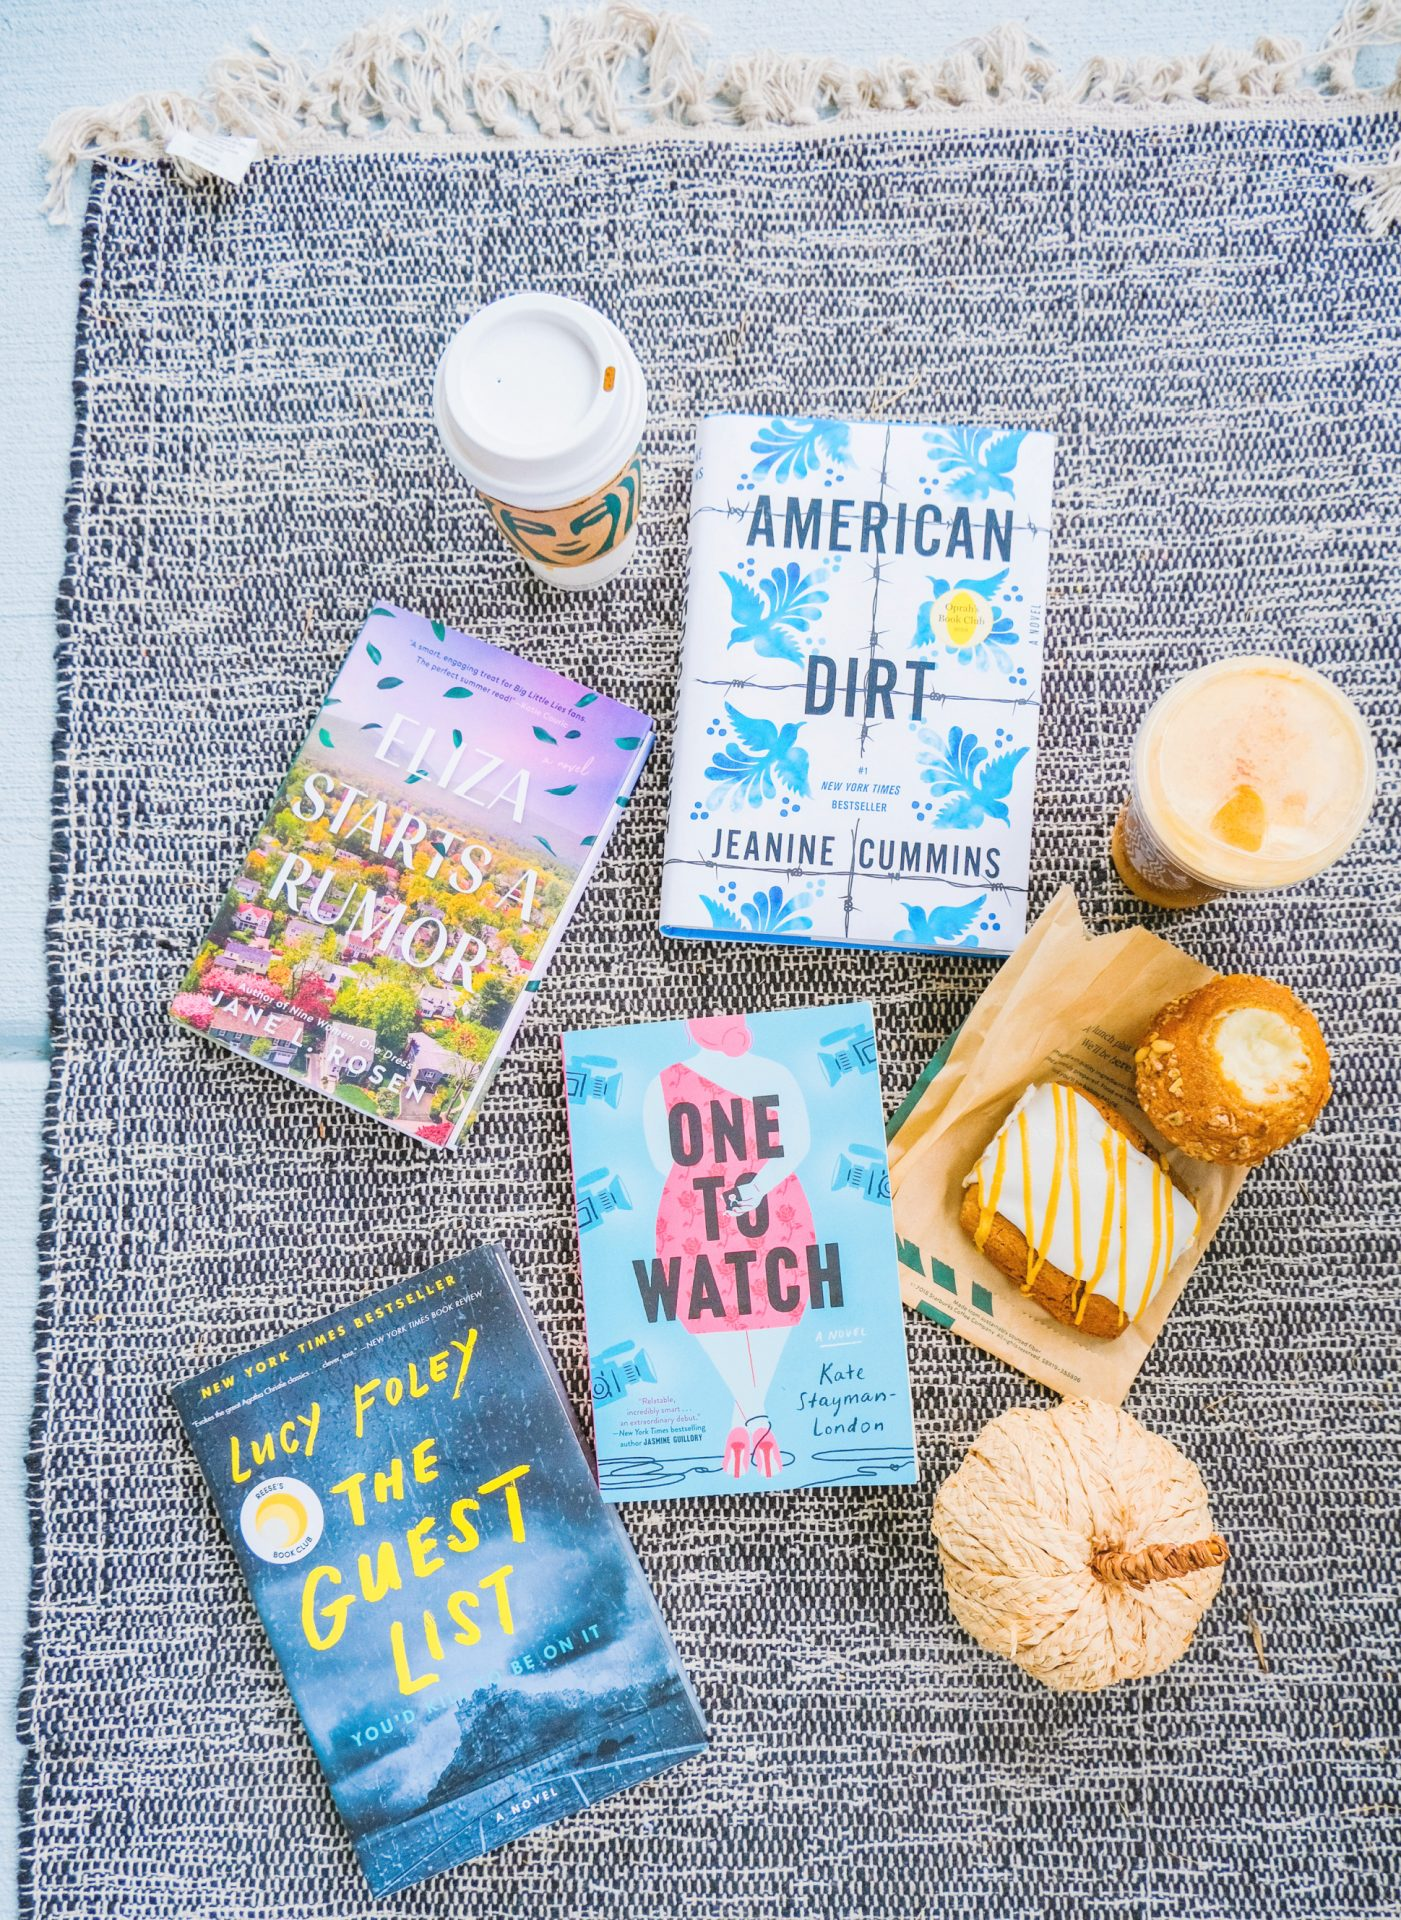 September book club, book club, American dirt, jeanie cummins, the one to watch, Katy stayman London, Eliza starts a rumor, Jane l Rosen, Lucy foley, the guest list, Starbucks, giveaway, pumpkin spice, autumn, fall